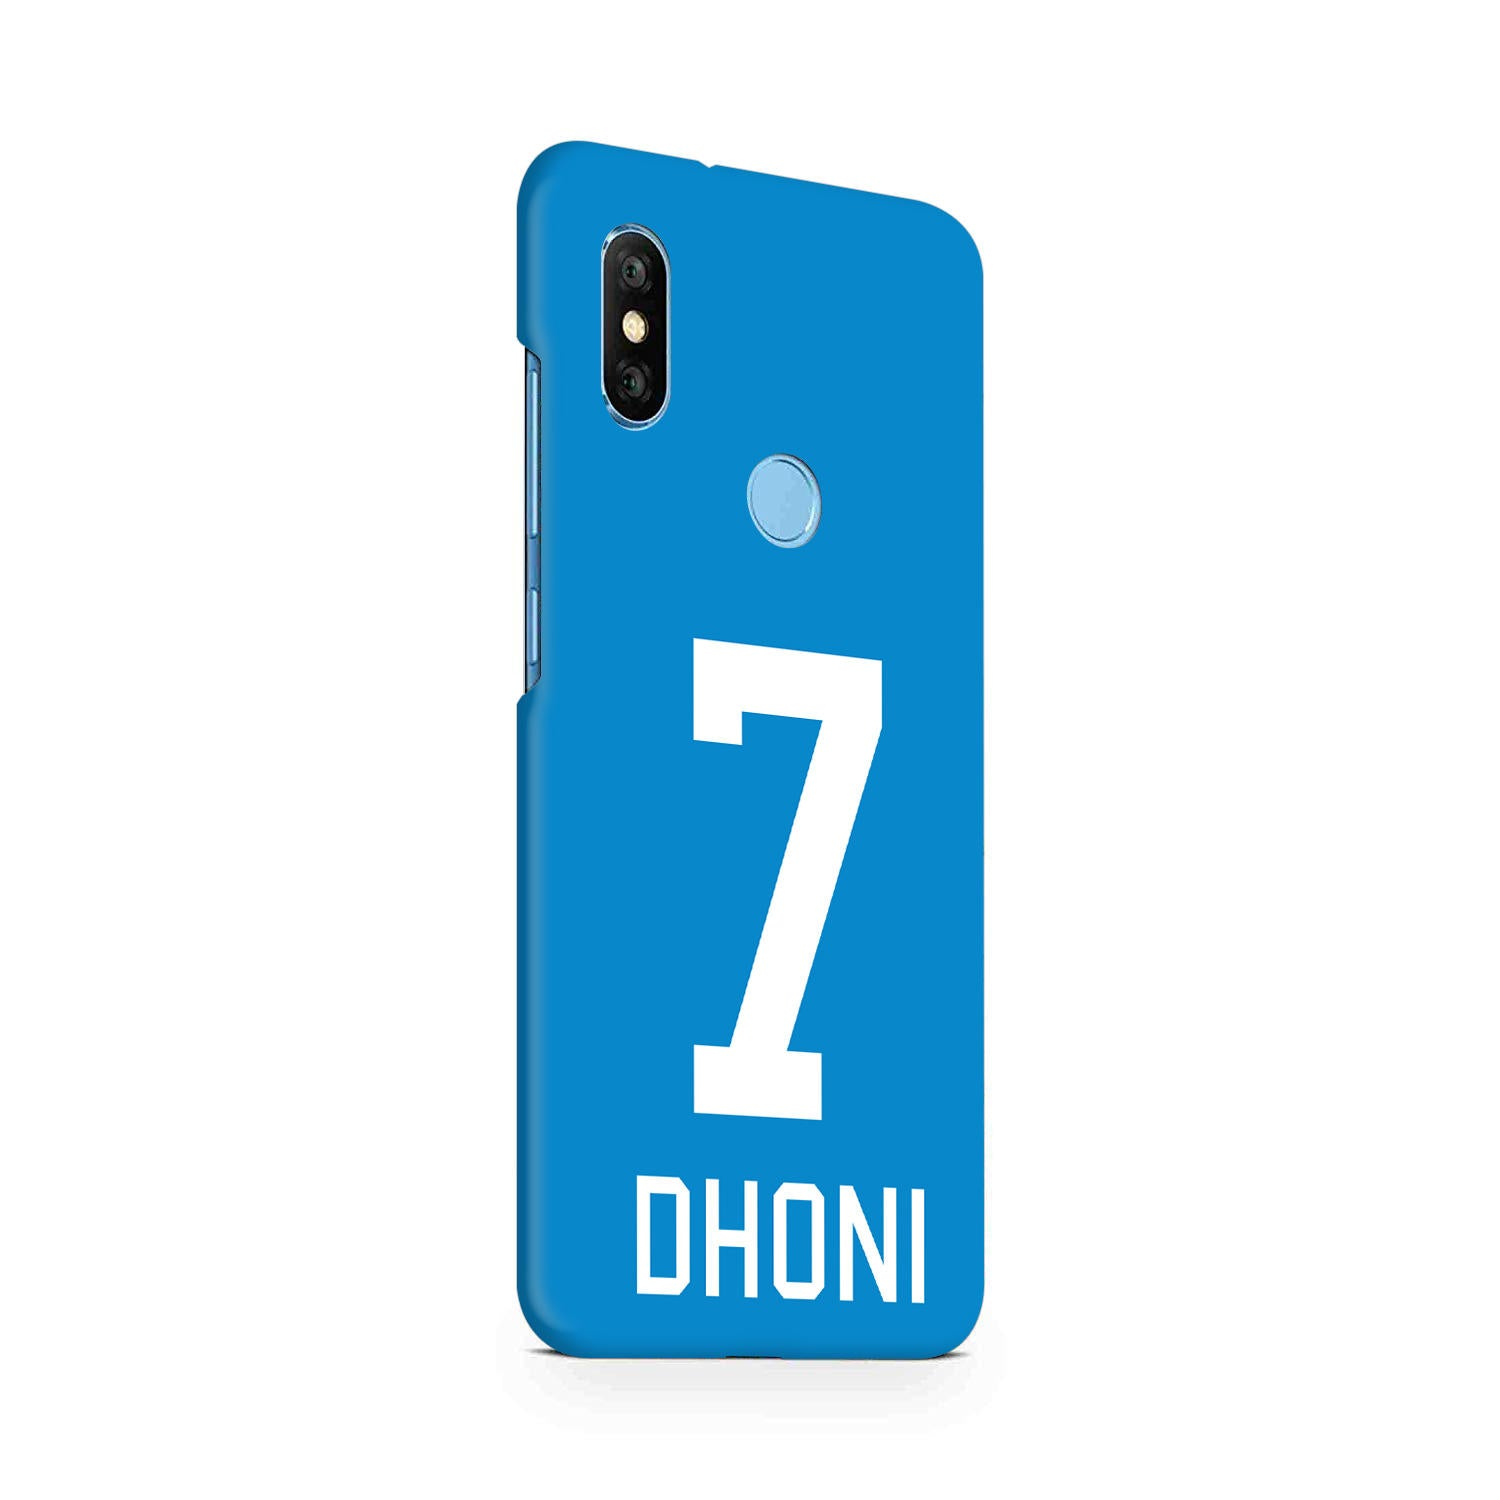 Dhoni Jersey RedMi Note 6 Pro Mobile Cover Case - MADANYU